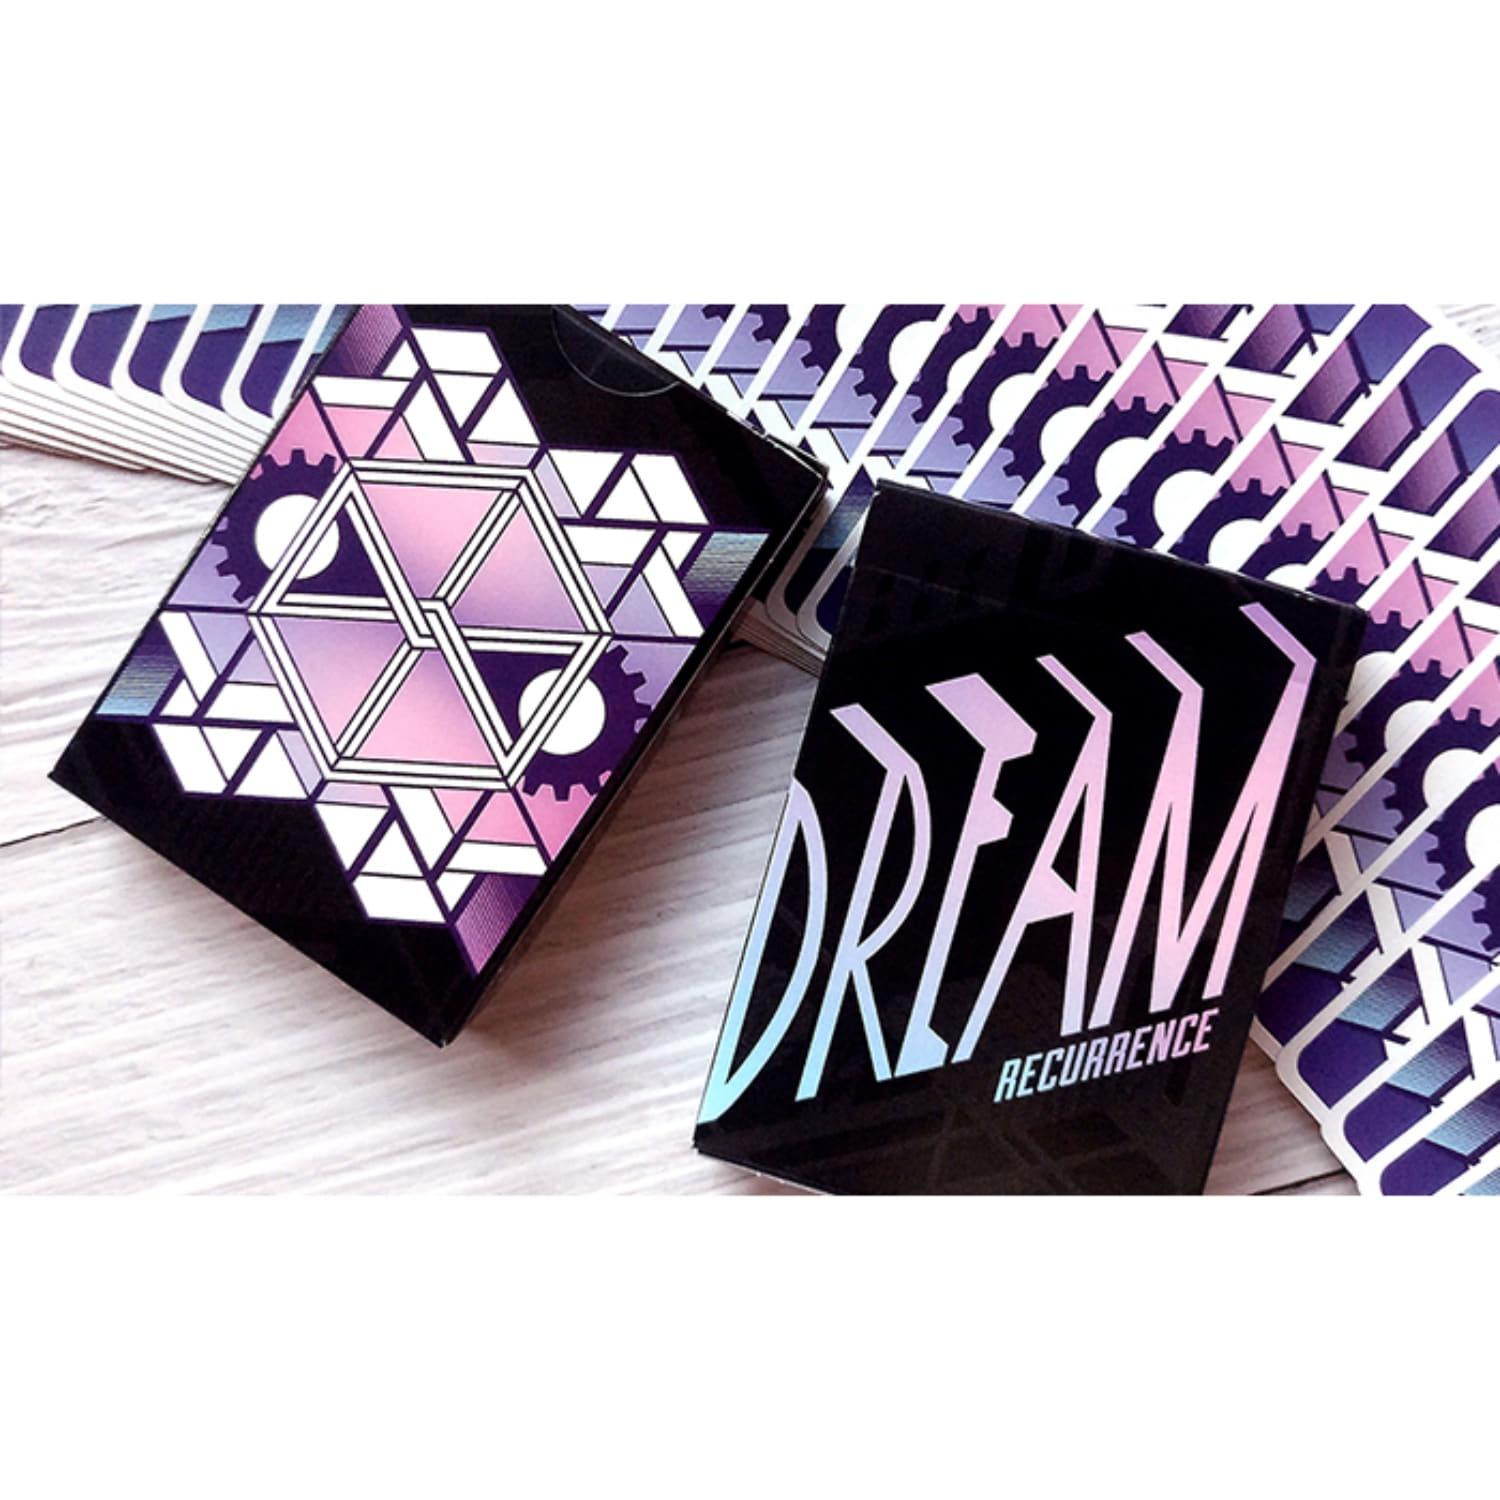 [드림리큐어런스 리버리]Dream Recurrence Reverie Playing Cards (Standard)